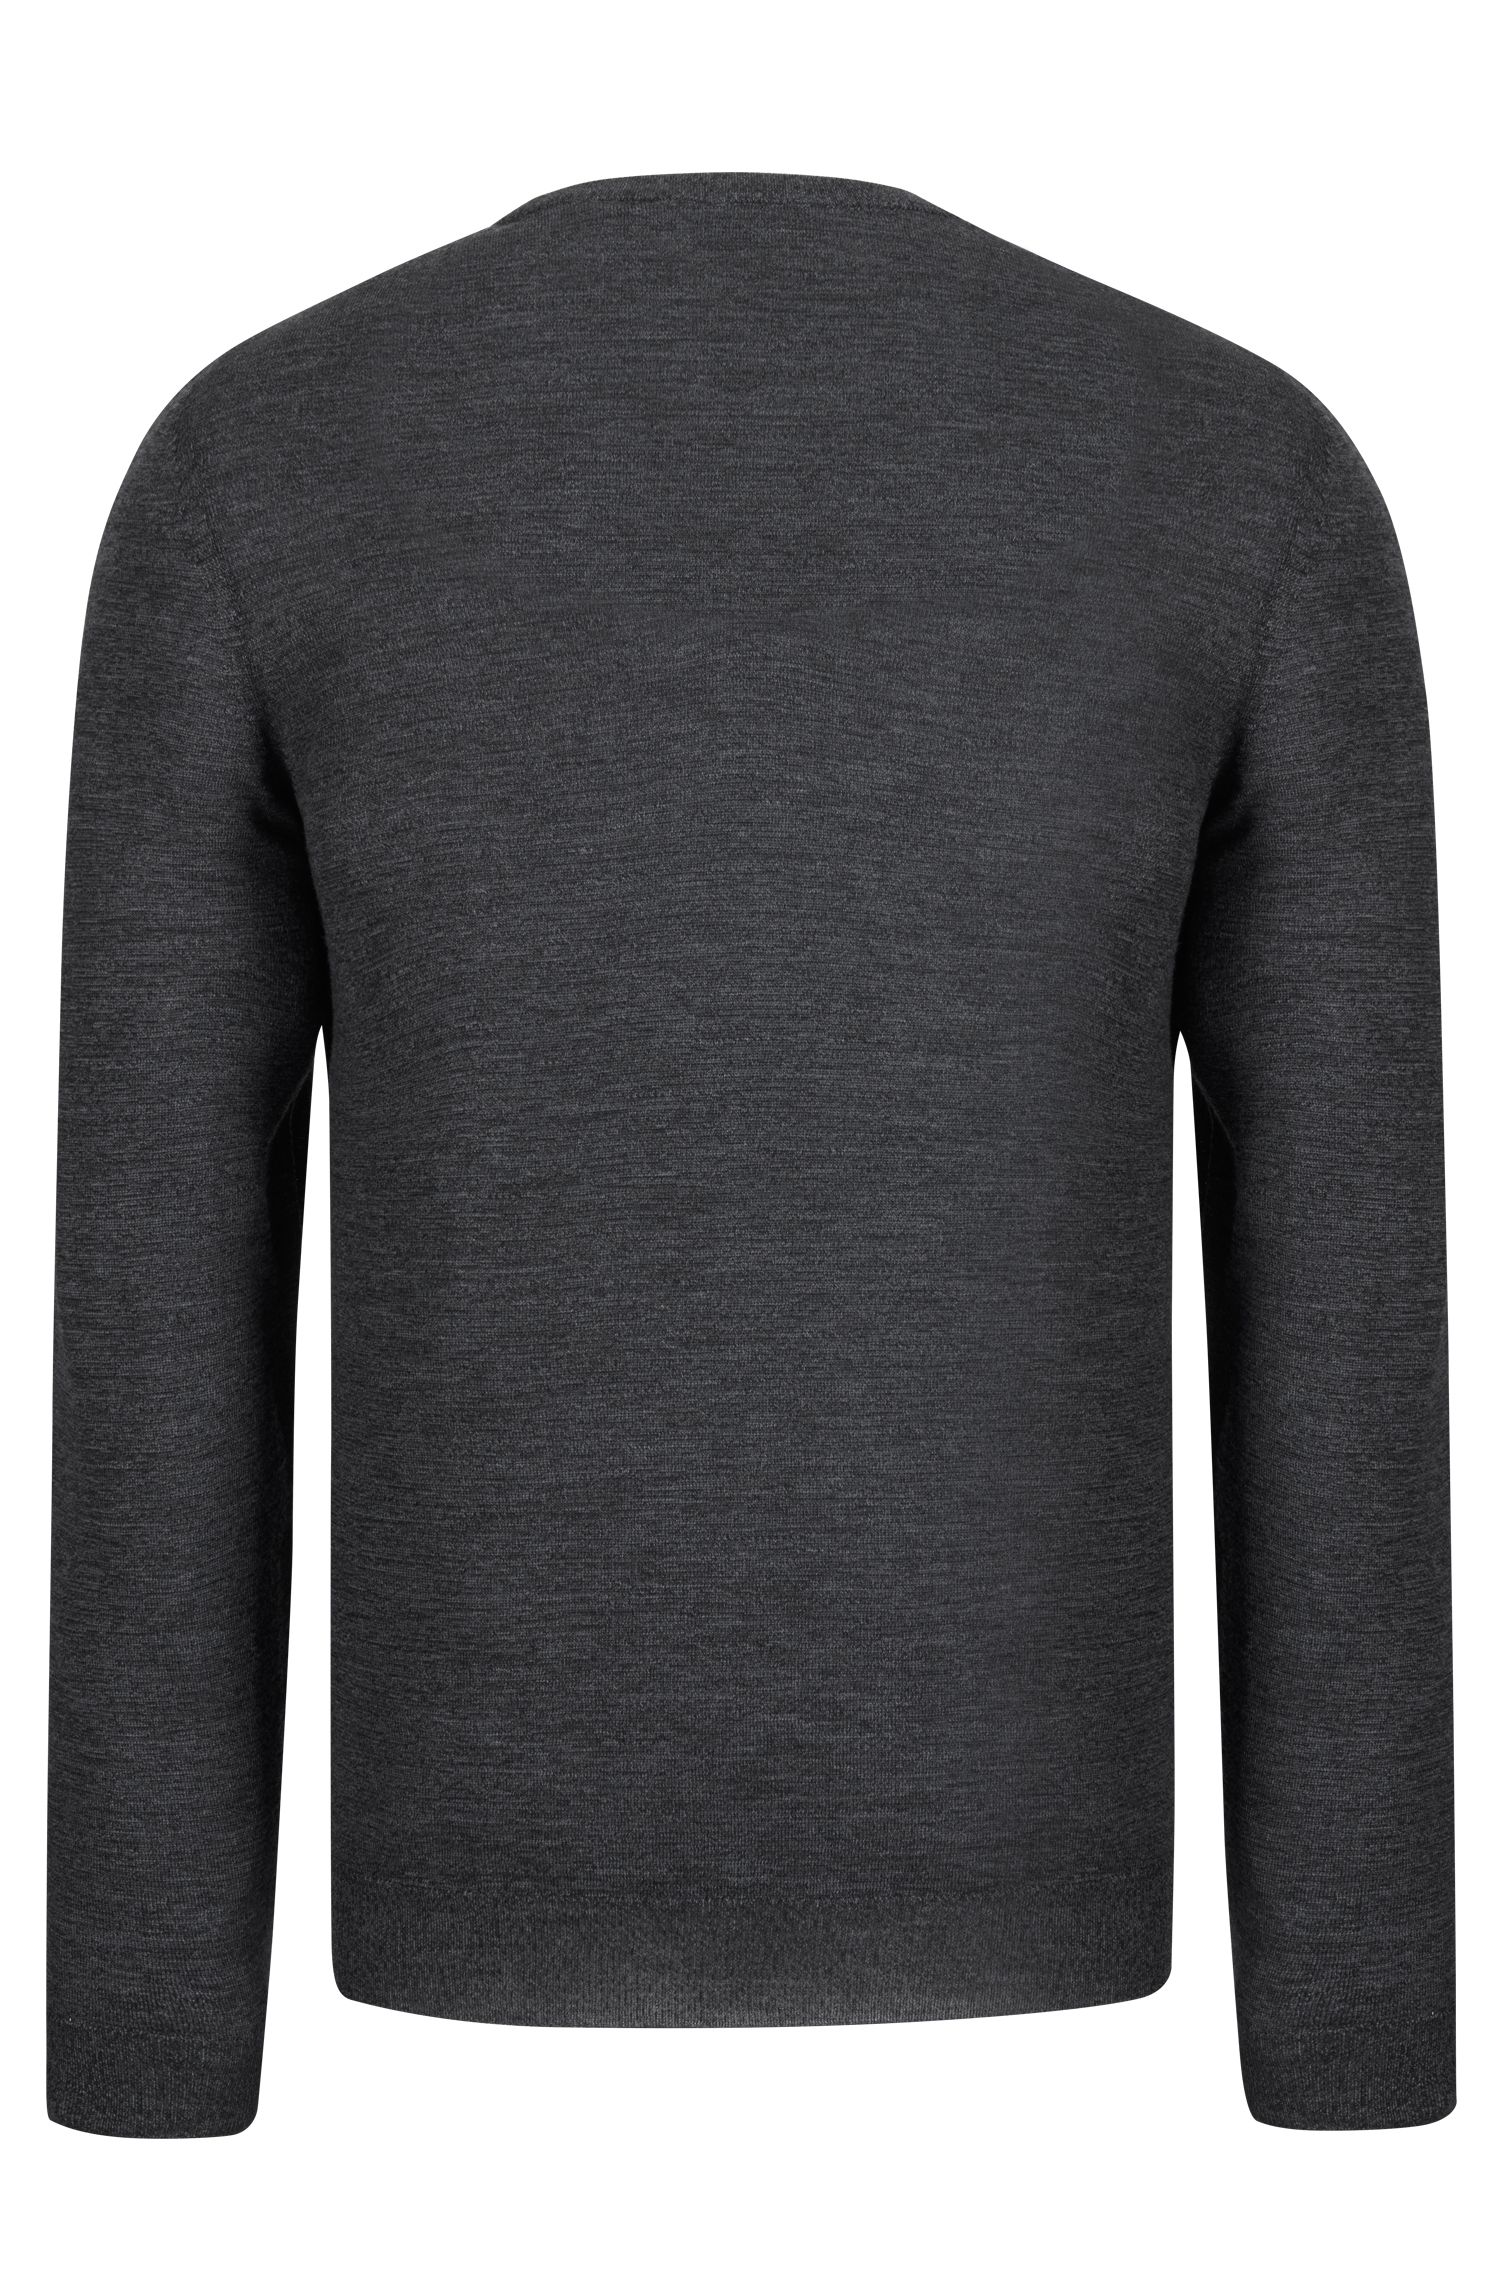 Extra-Fine Merino Wool Sweater | Leno N, Black